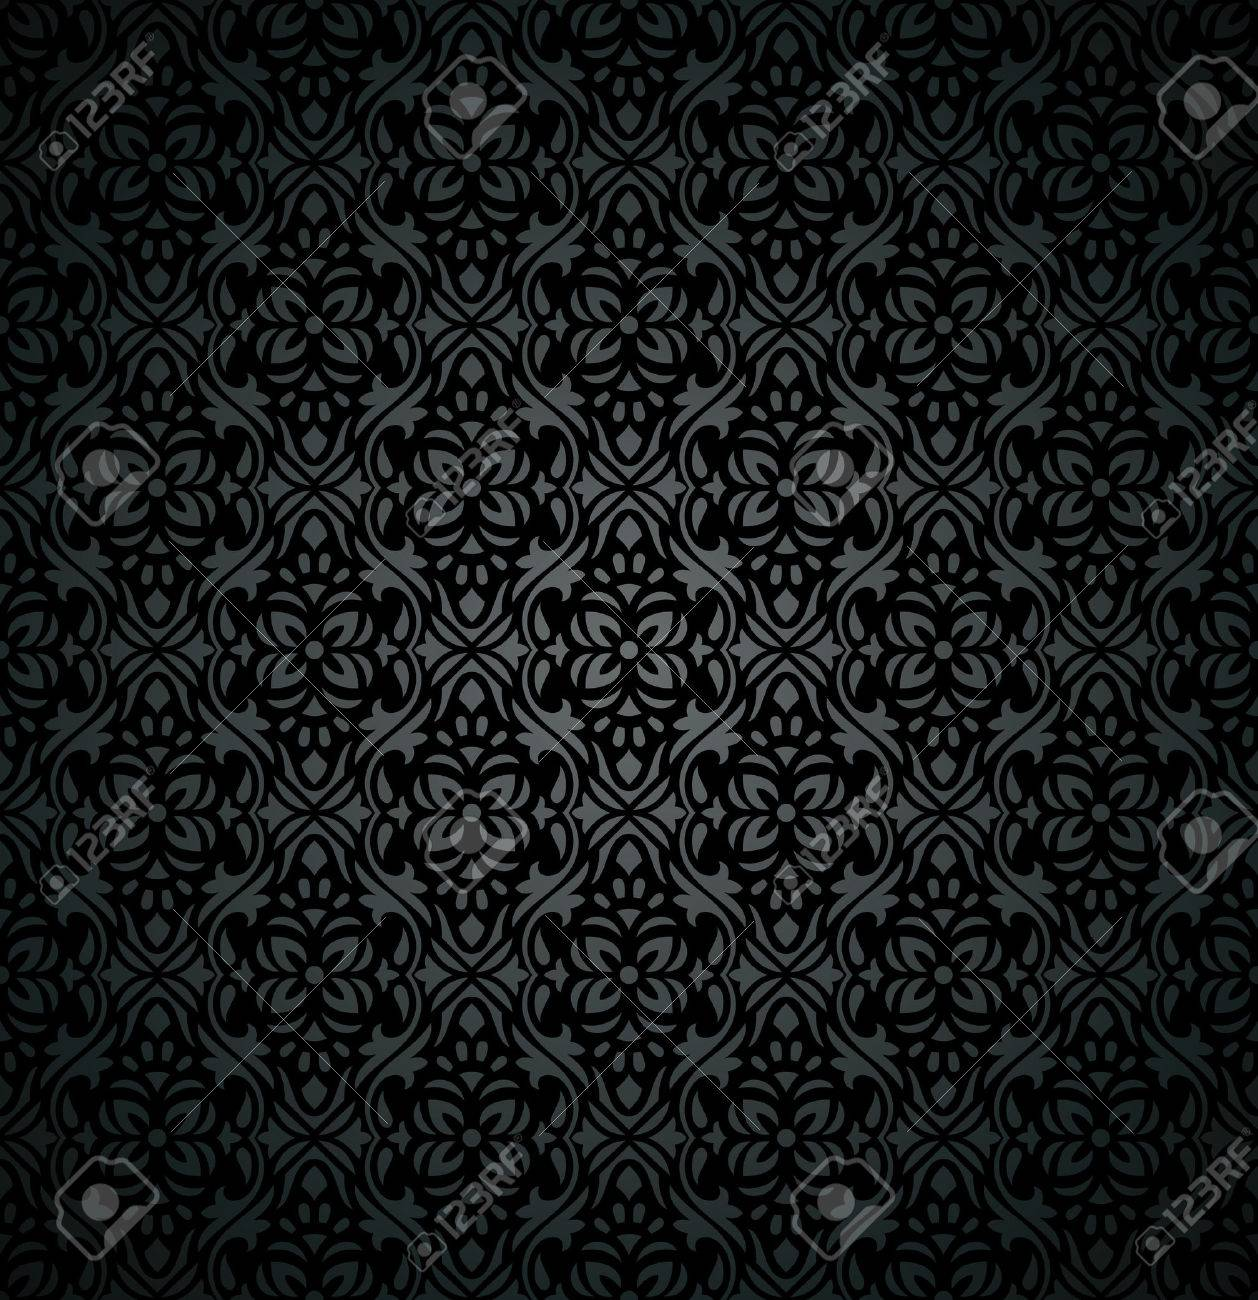 Damask Royal Dark Floral Wallpaper Royalty Free Cliparts Vectors